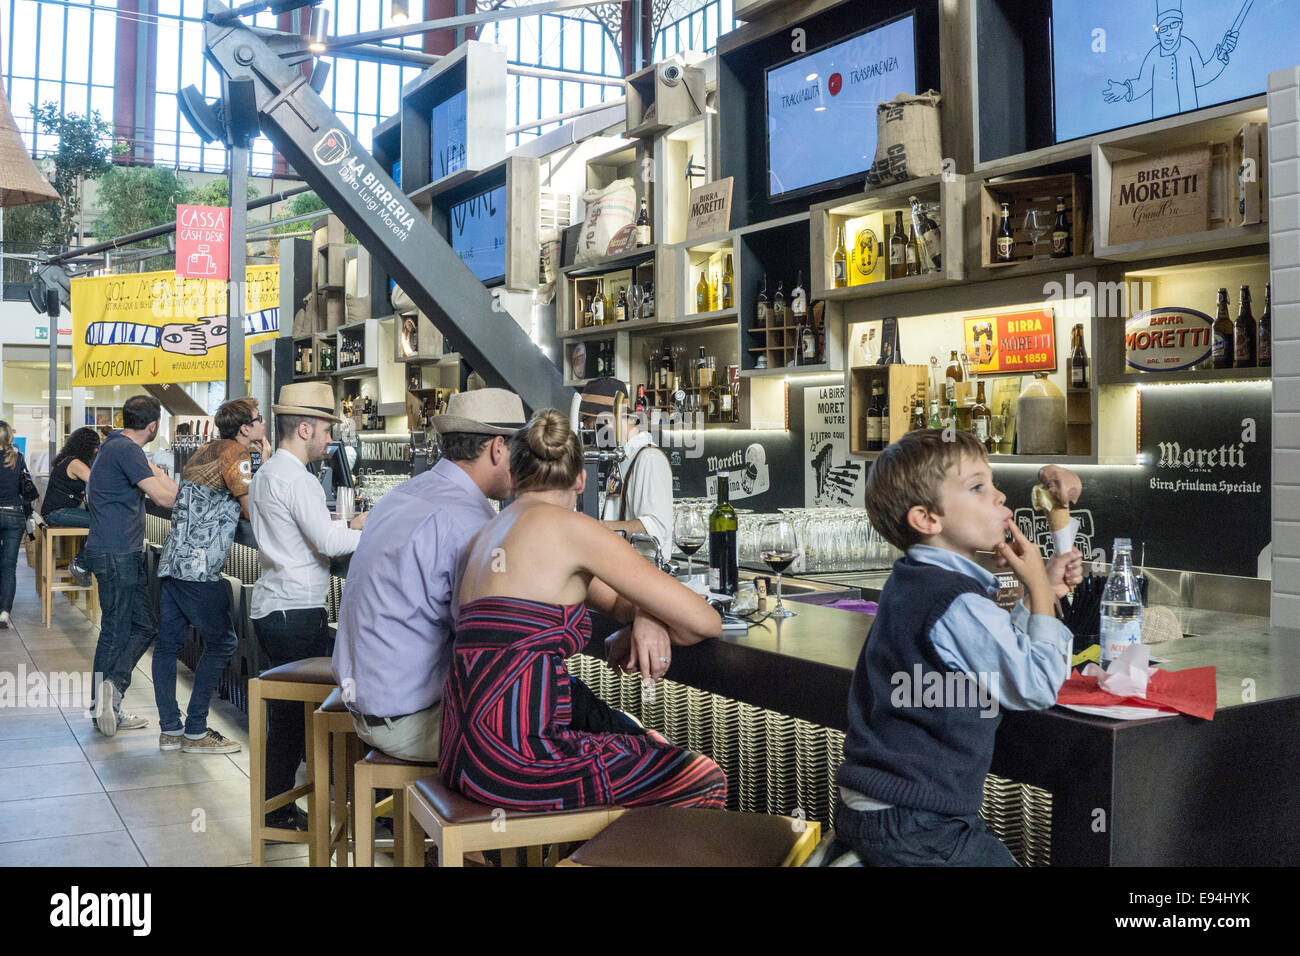 bar on top floor of cast iron & glass Central Market Mercato Centrale with diverse patrons enjoying an afternoon - Stock Image